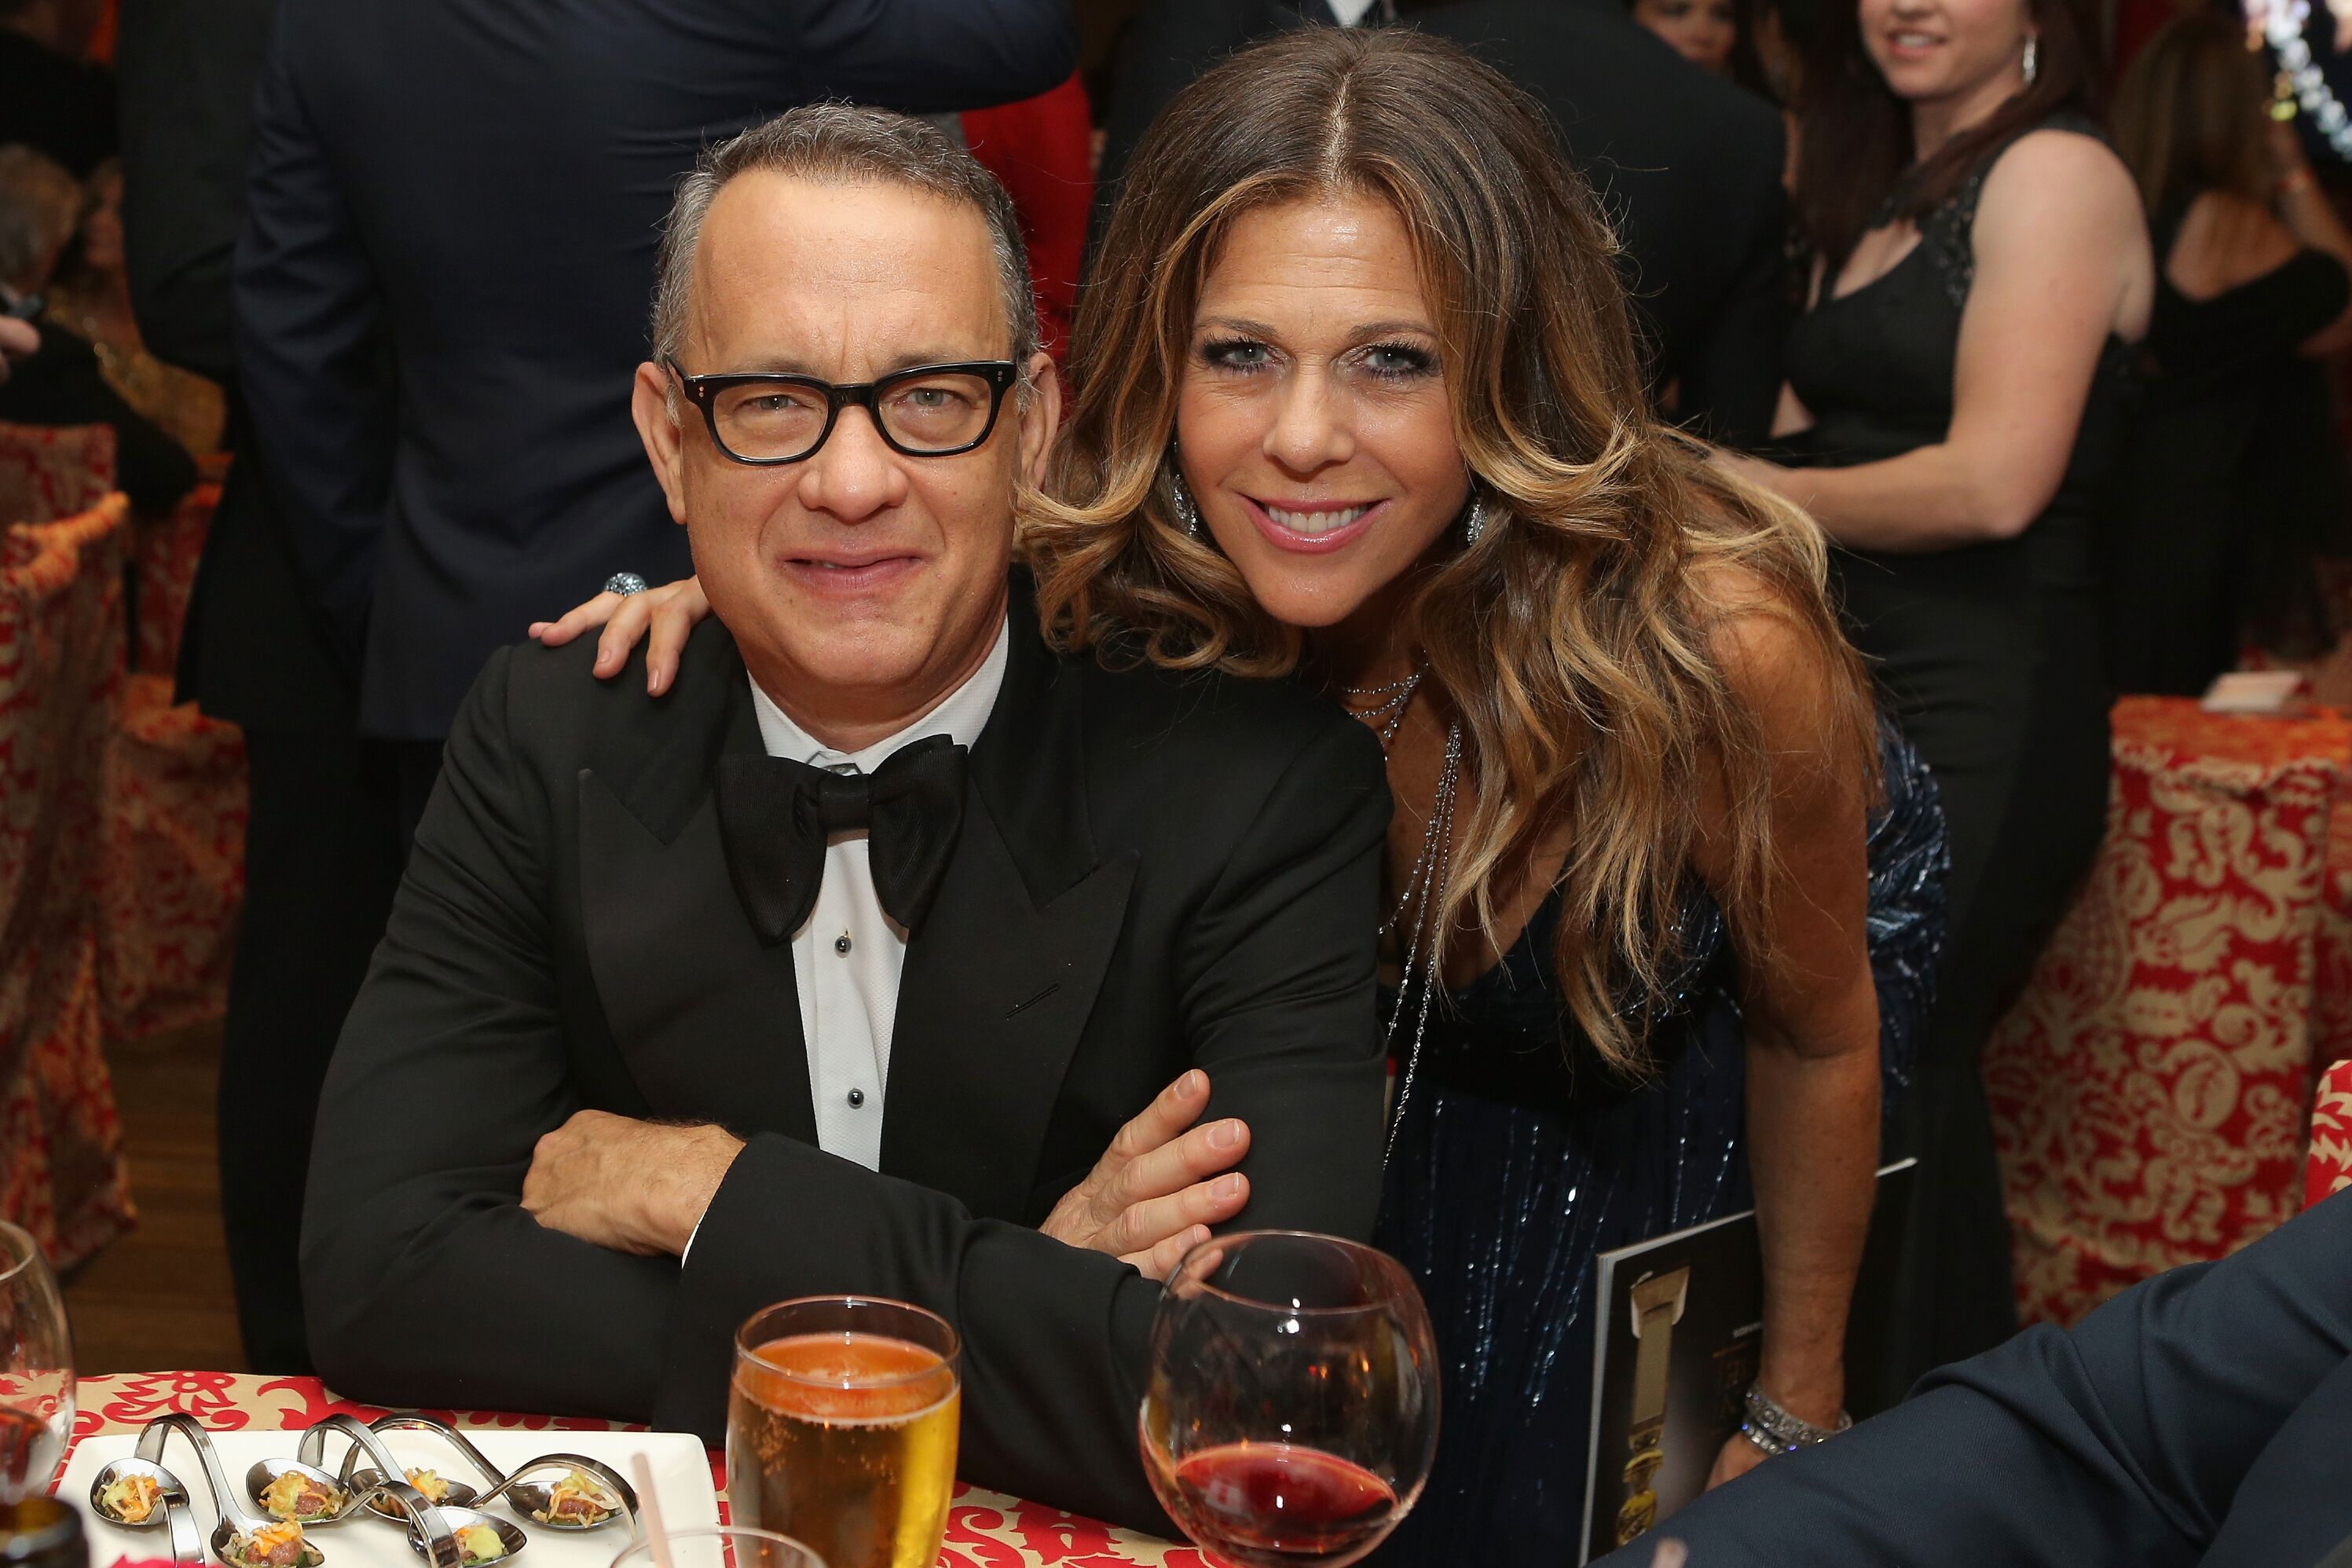 Tom Hanks and Rita Wilson at HBO's Post-Golden Globe Awards Party on January 12, 2014, in Los Angeles, California | Photo: Mike Windle/Getty Images